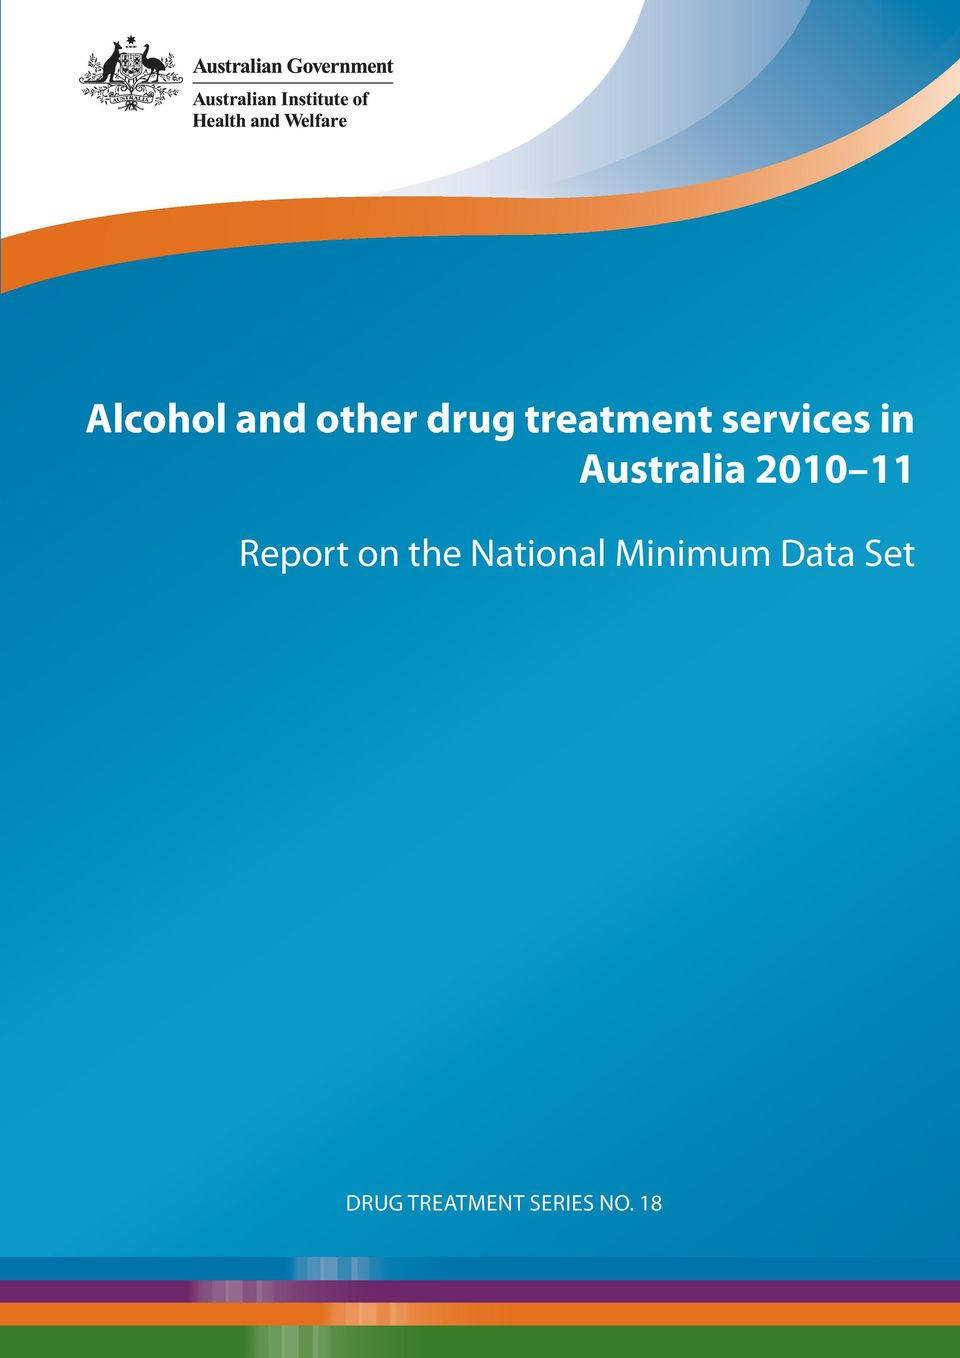 Report on the National Minimum